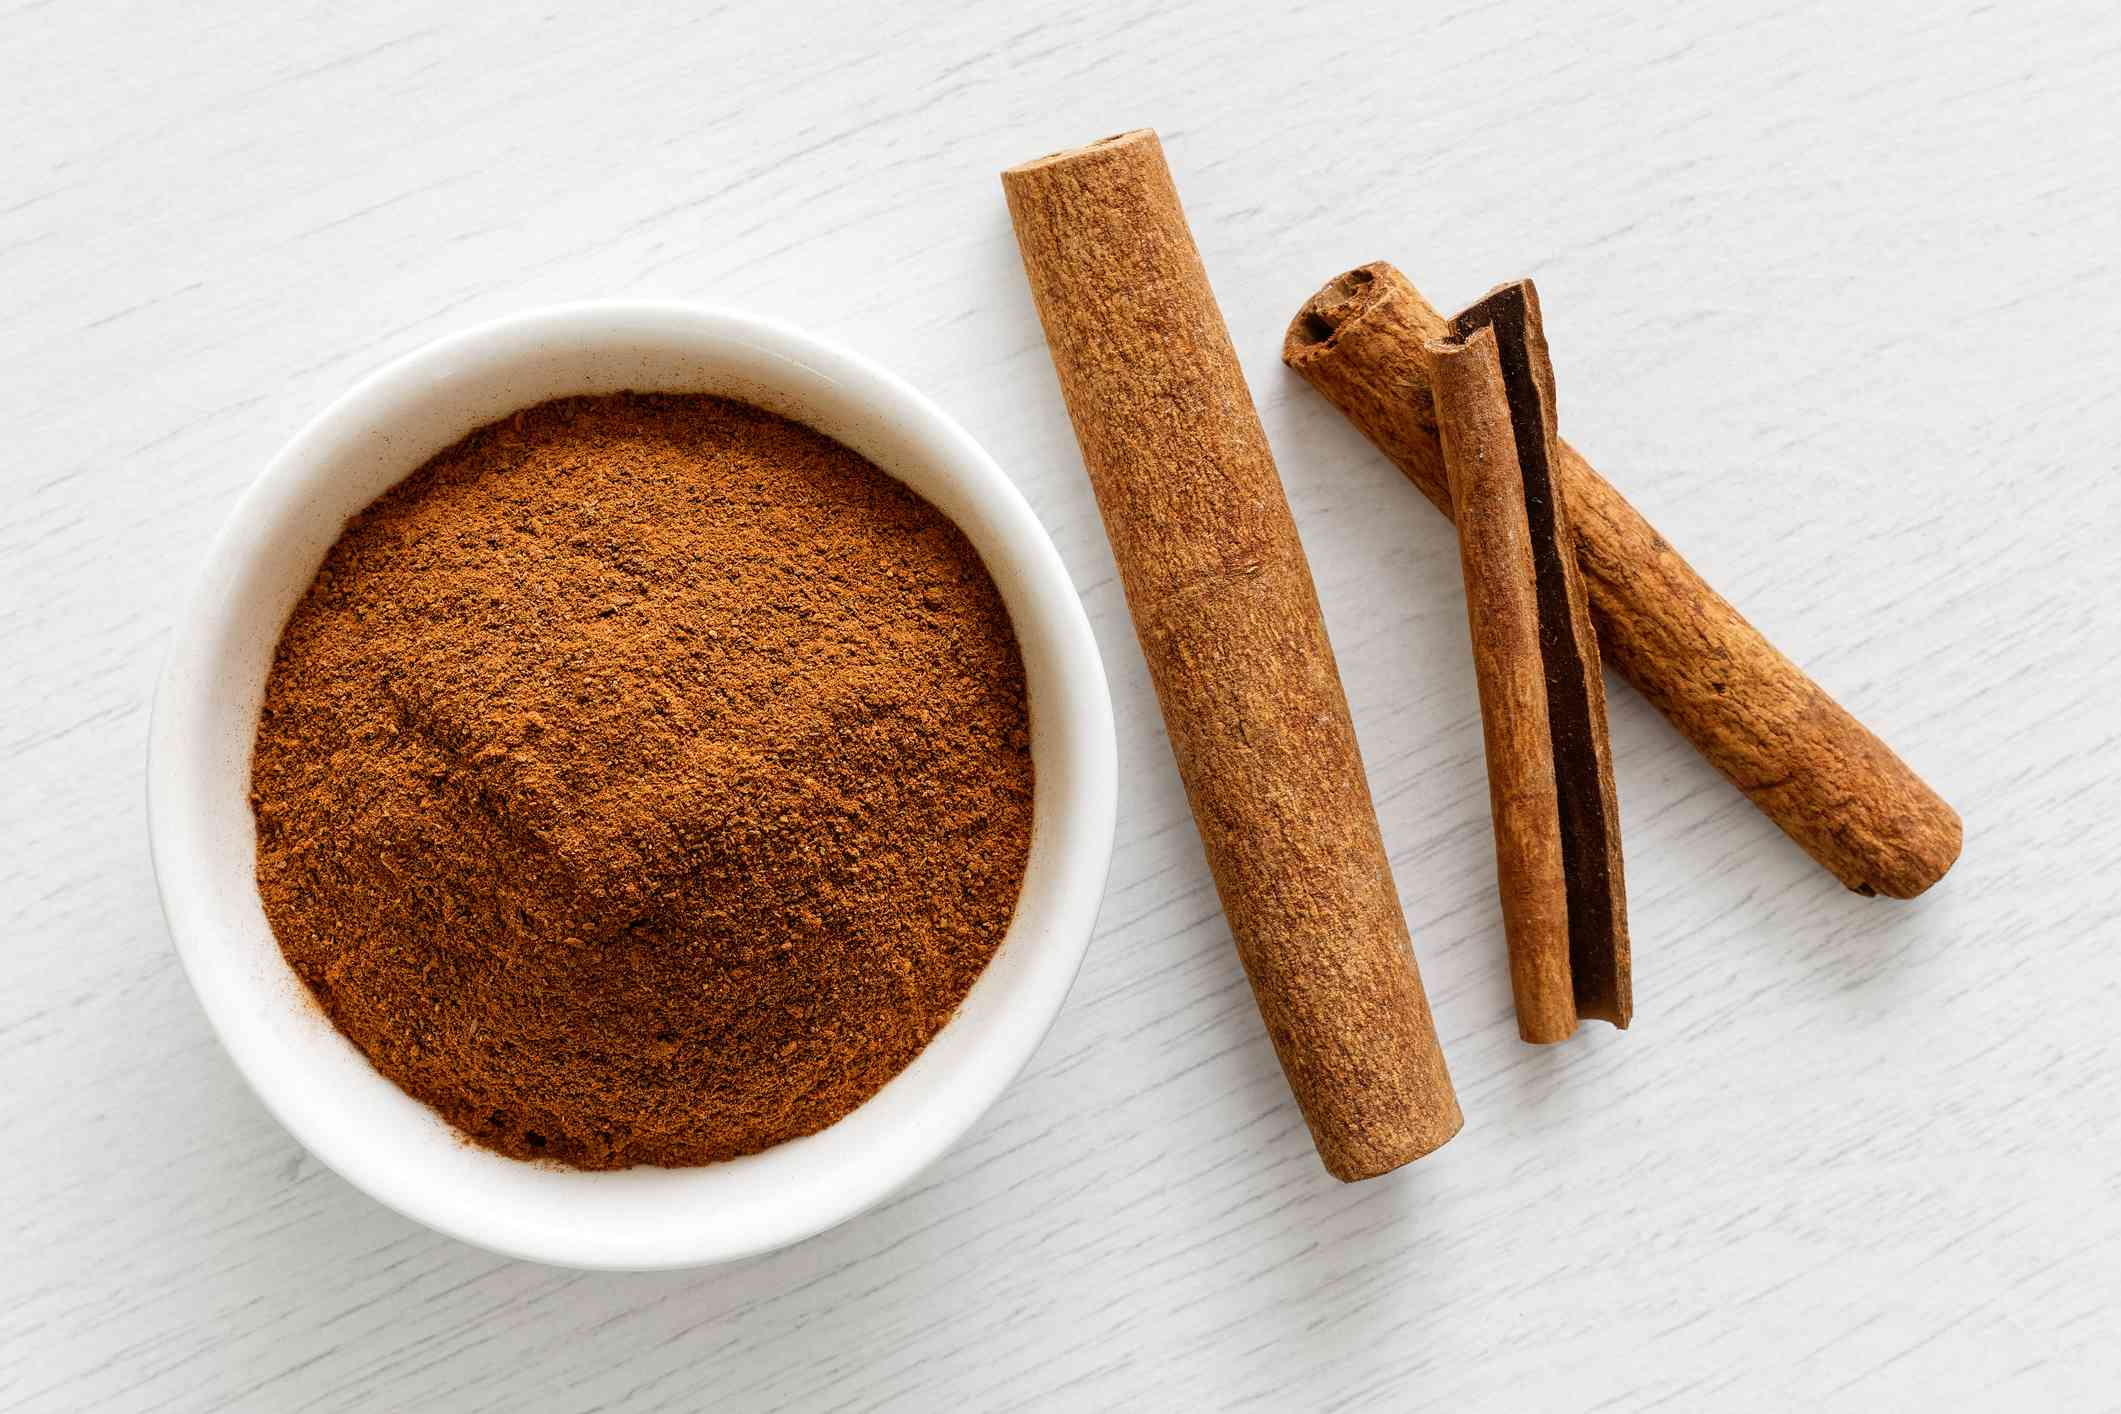 Finely ground cinnamon in white ceramic bowl isolated on white wood background from above. Cinnamon sticks.